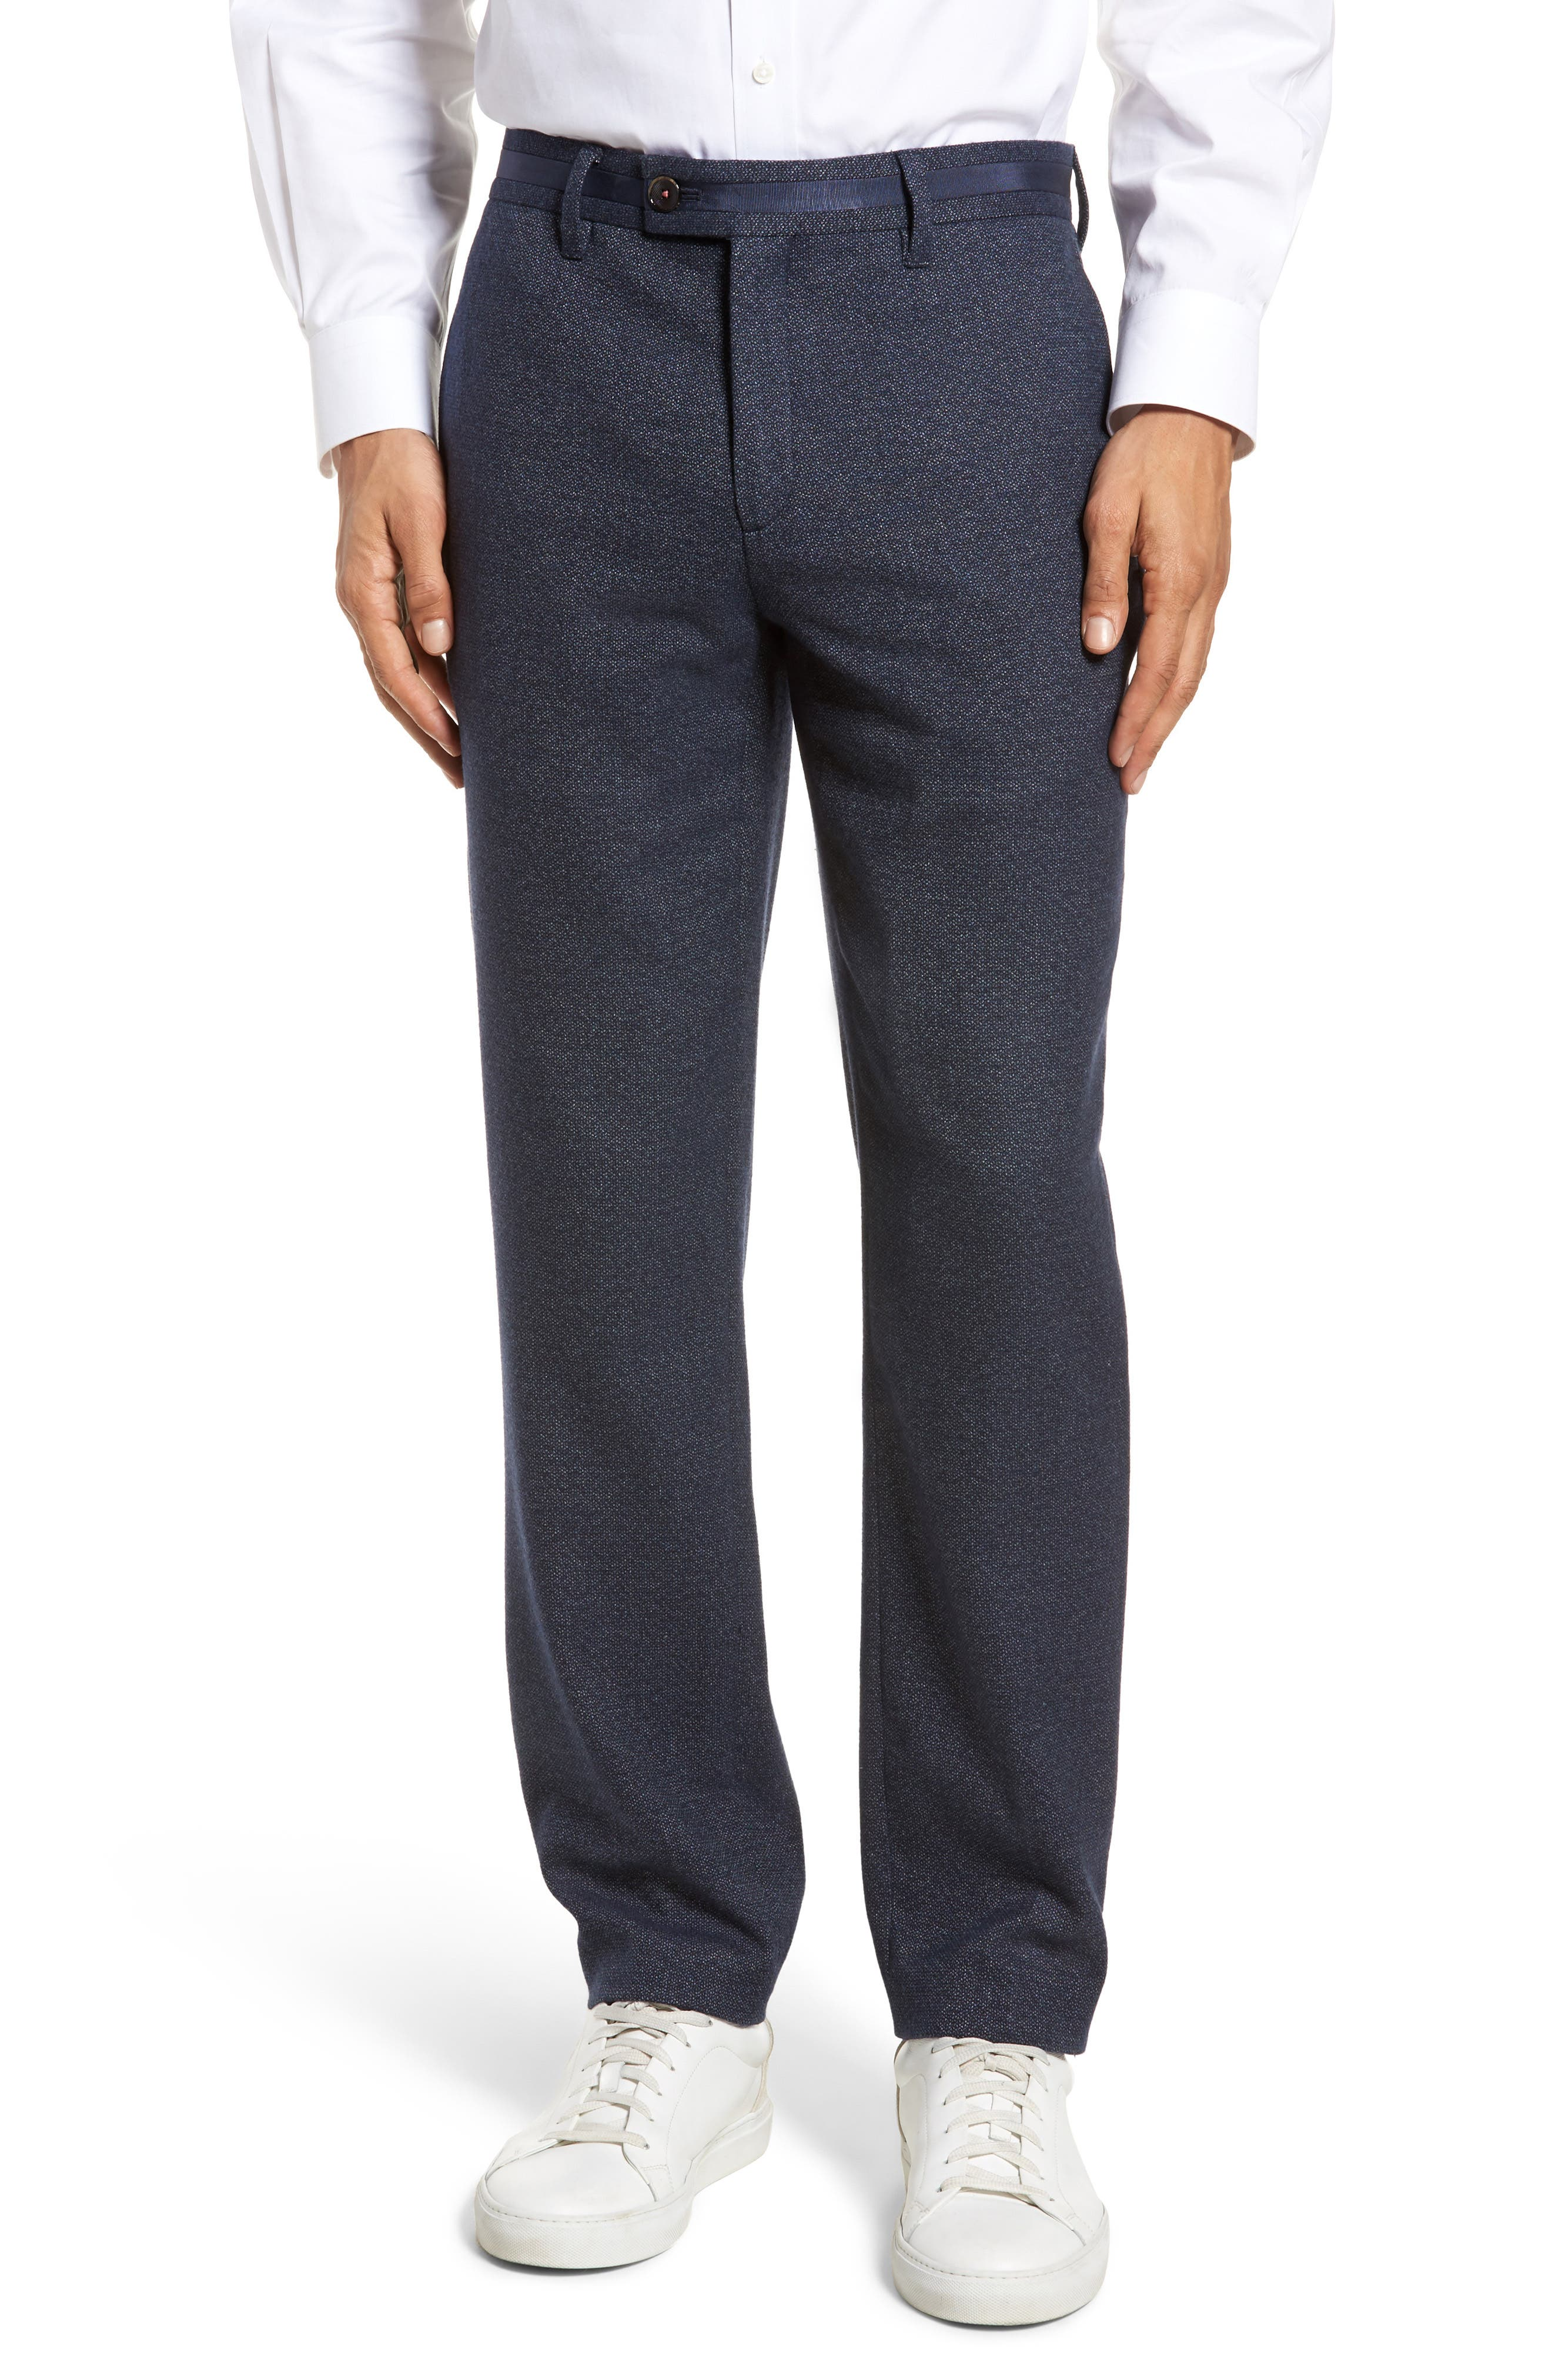 Clifrot Flat Front Stretch Solid Cotton Pants,                         Main,                         color, Navy